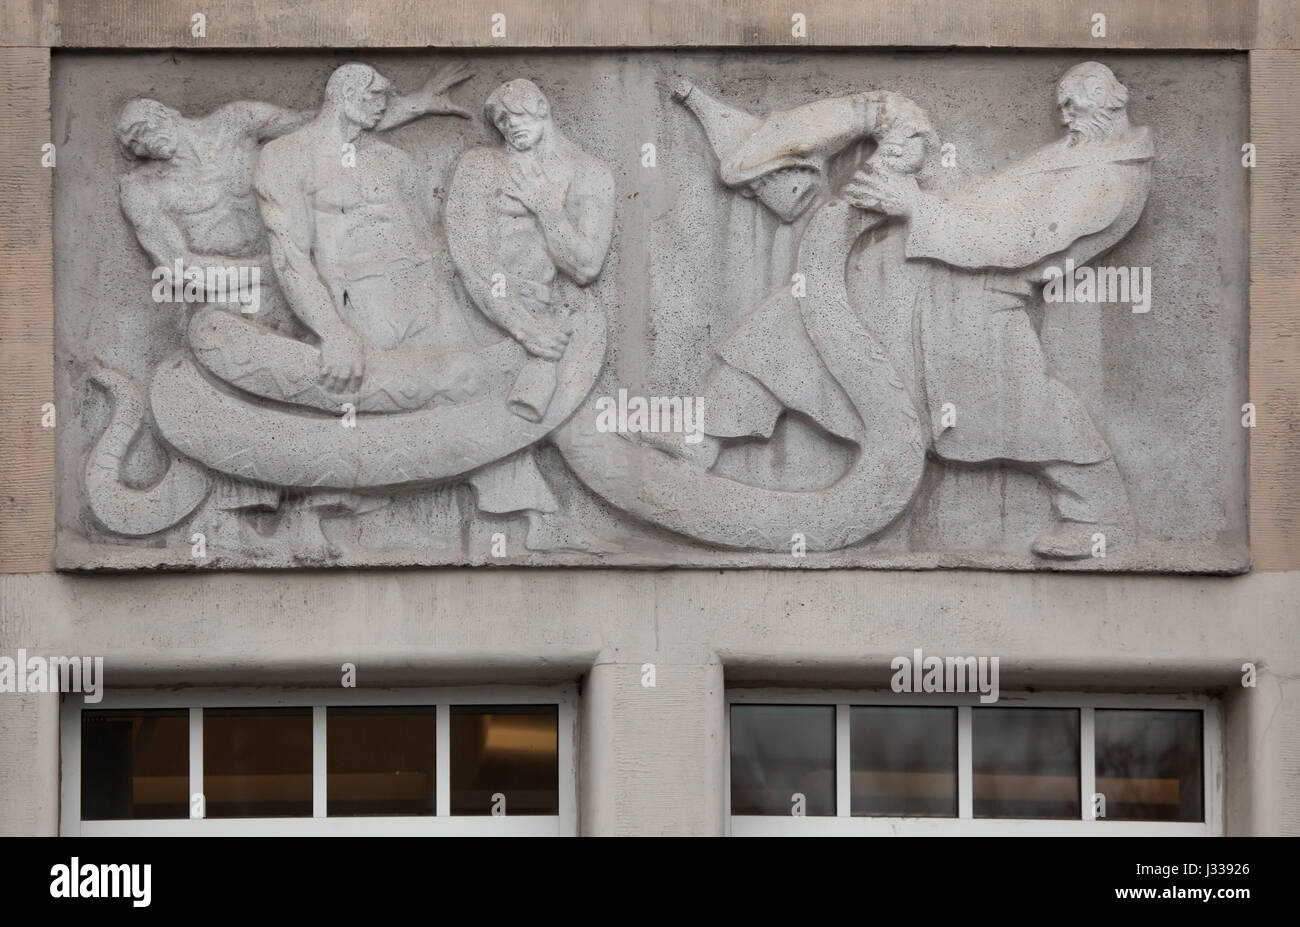 Fighting with the alcohol dependence syndrome. Relief by Hungarian sculptor Mihaly Biro on the south wing of the - Stock Image